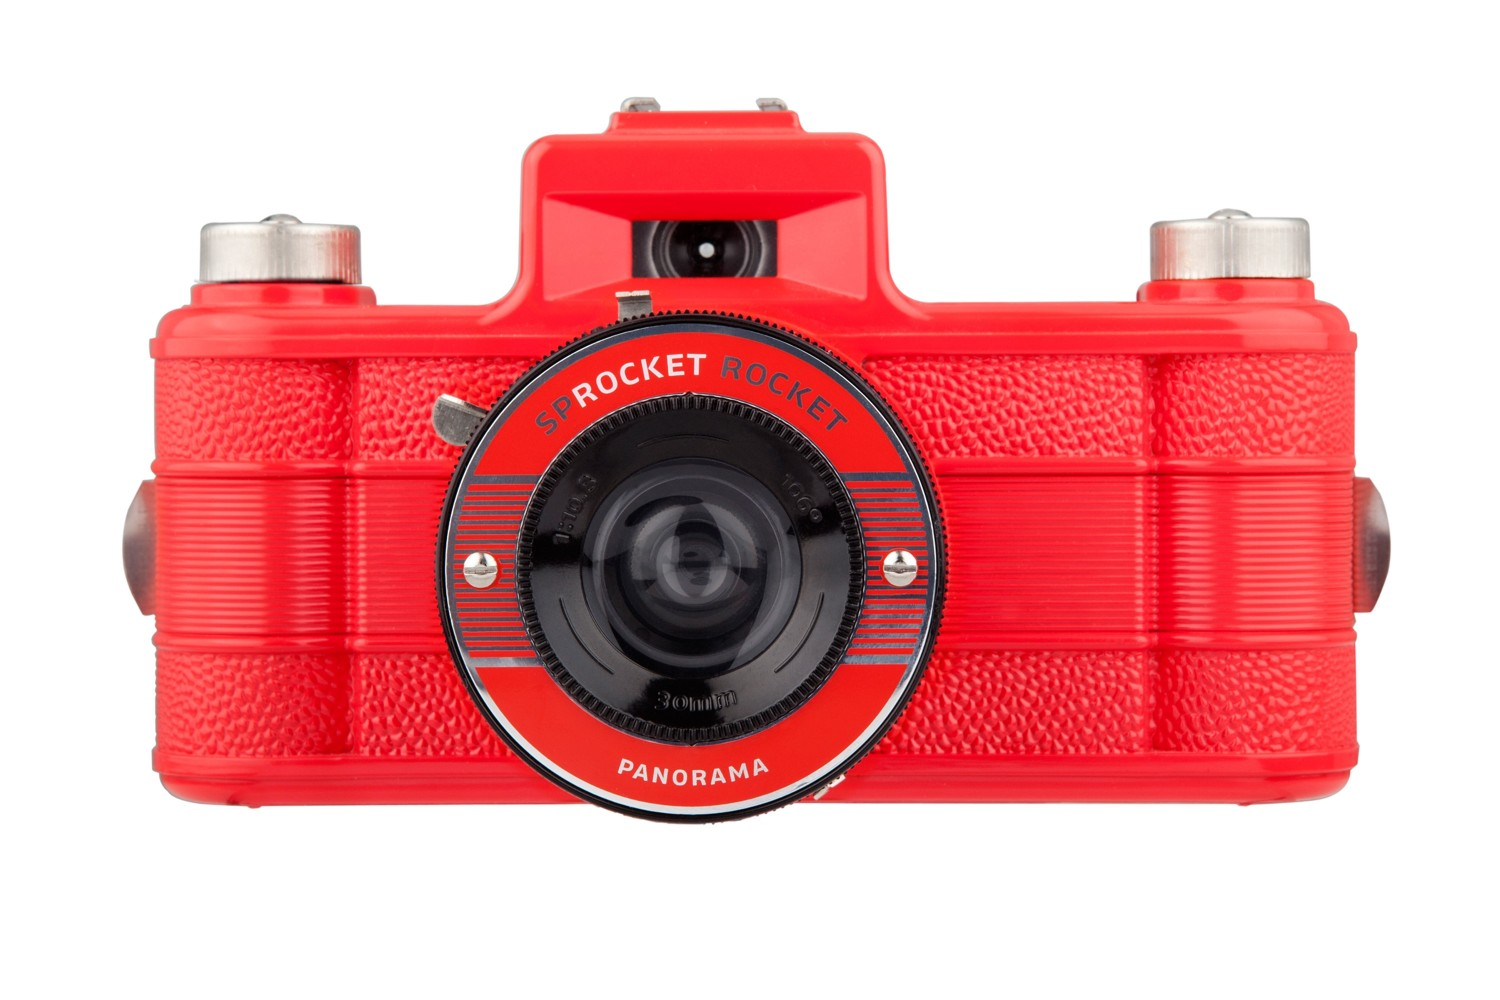 La fotocamera Sprocket Rocket Red 2.0